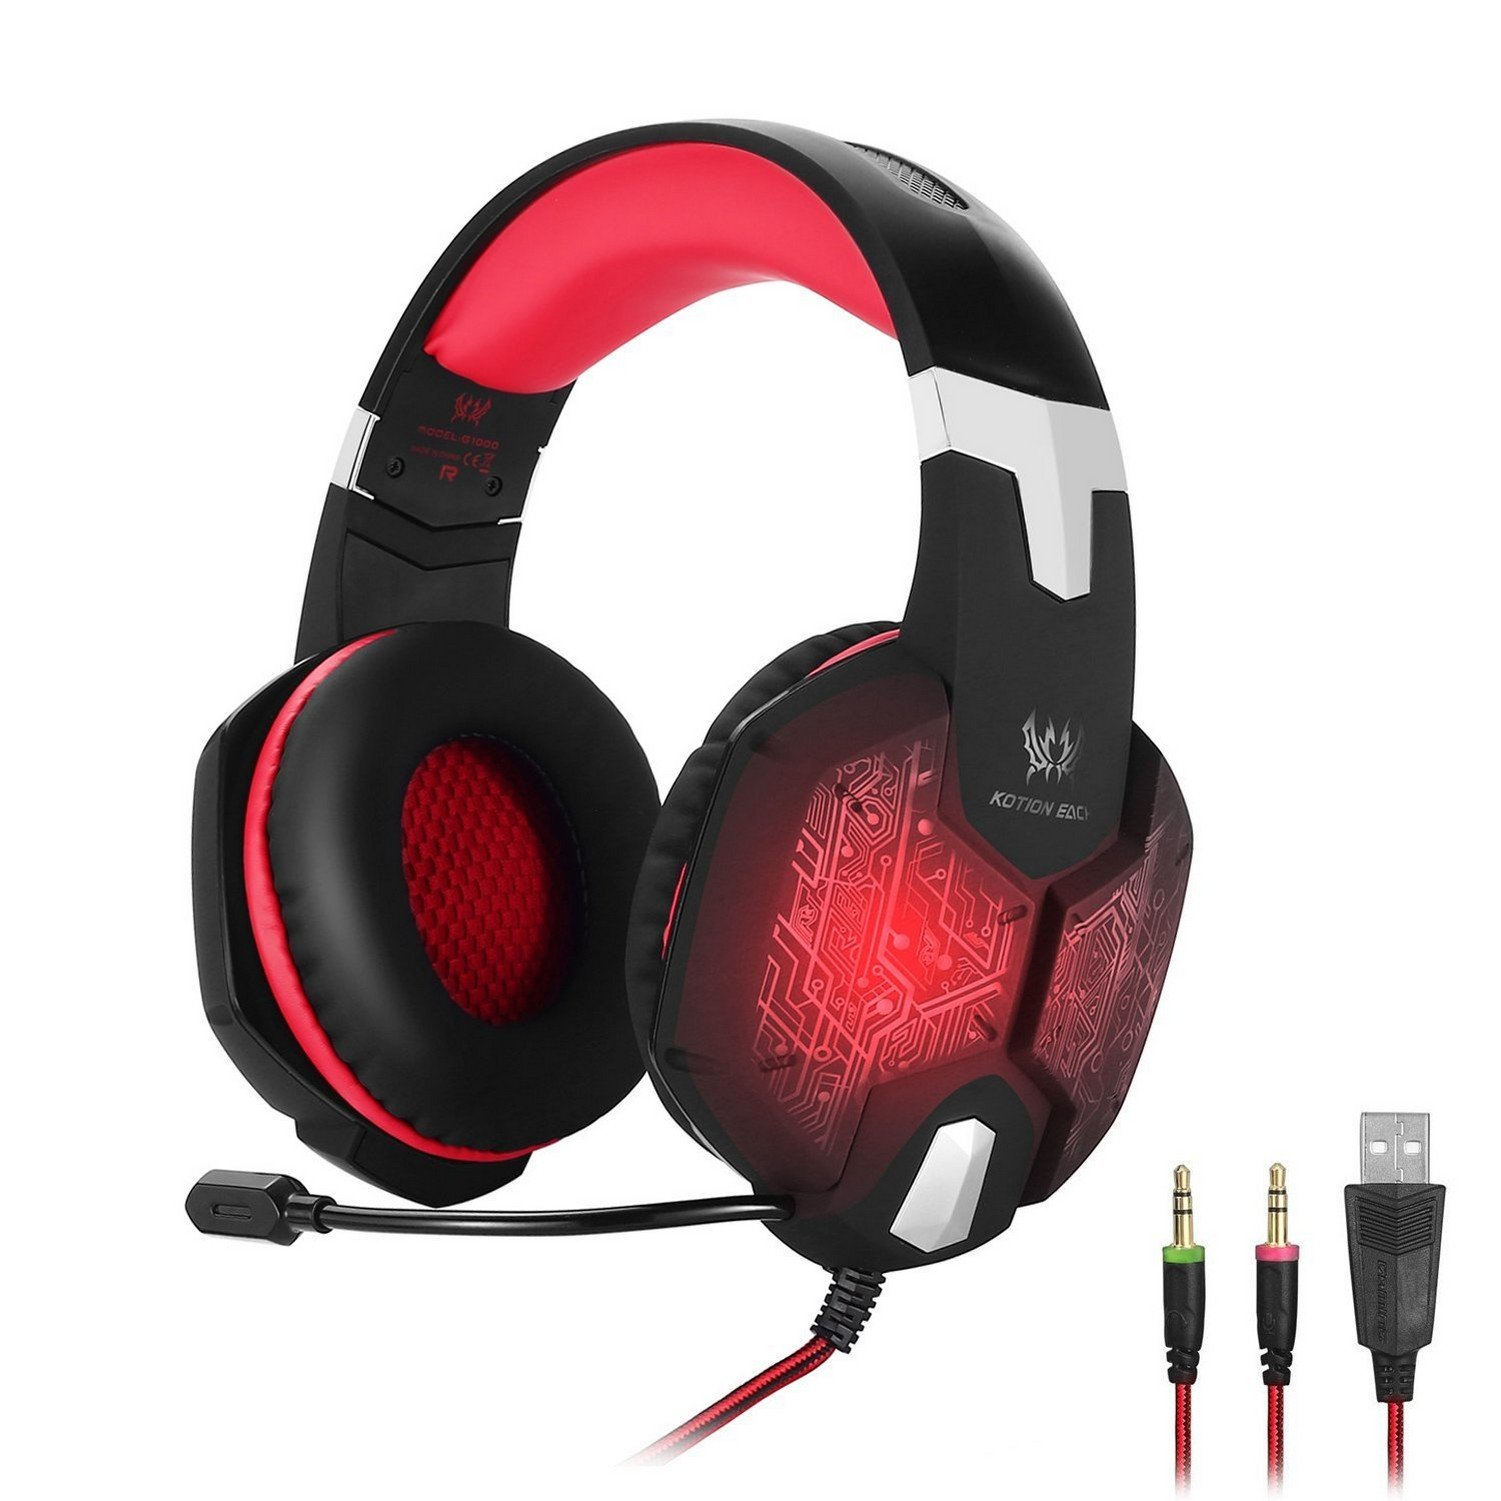 ENVEL Gaming Headset G1000 Professional 3.5mm PC Bass Stereo Headphones Earphones Headband with Mic Microphone Colorful Breathing LED Light for Laptop Computer (Black & Red)